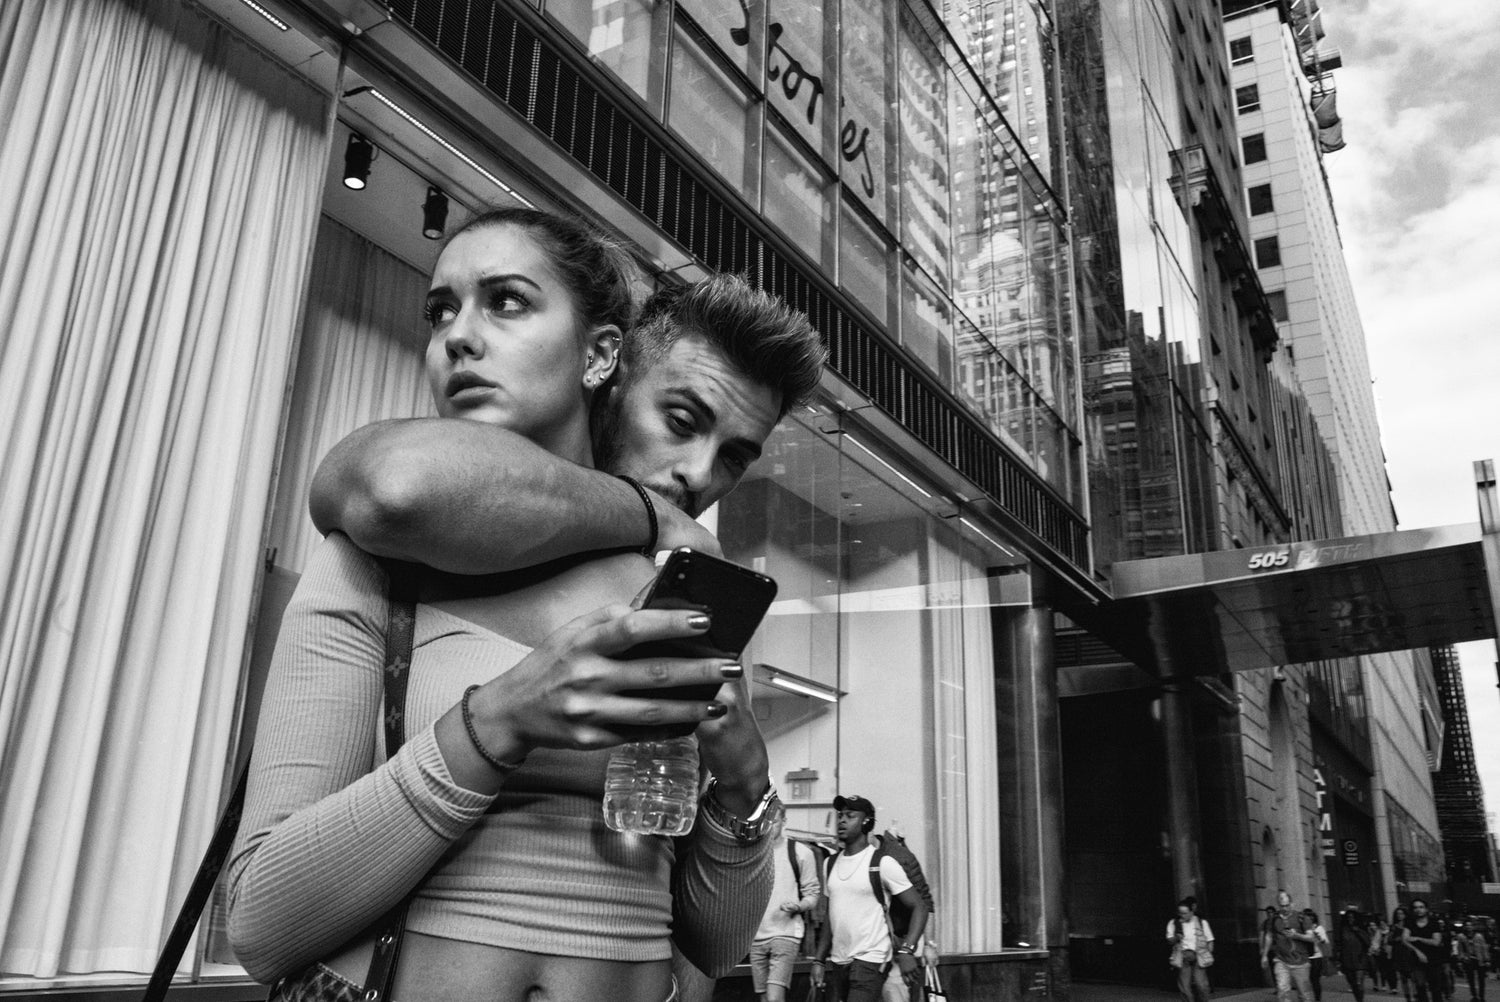 Image of West 42nd Street, NYC, 2018